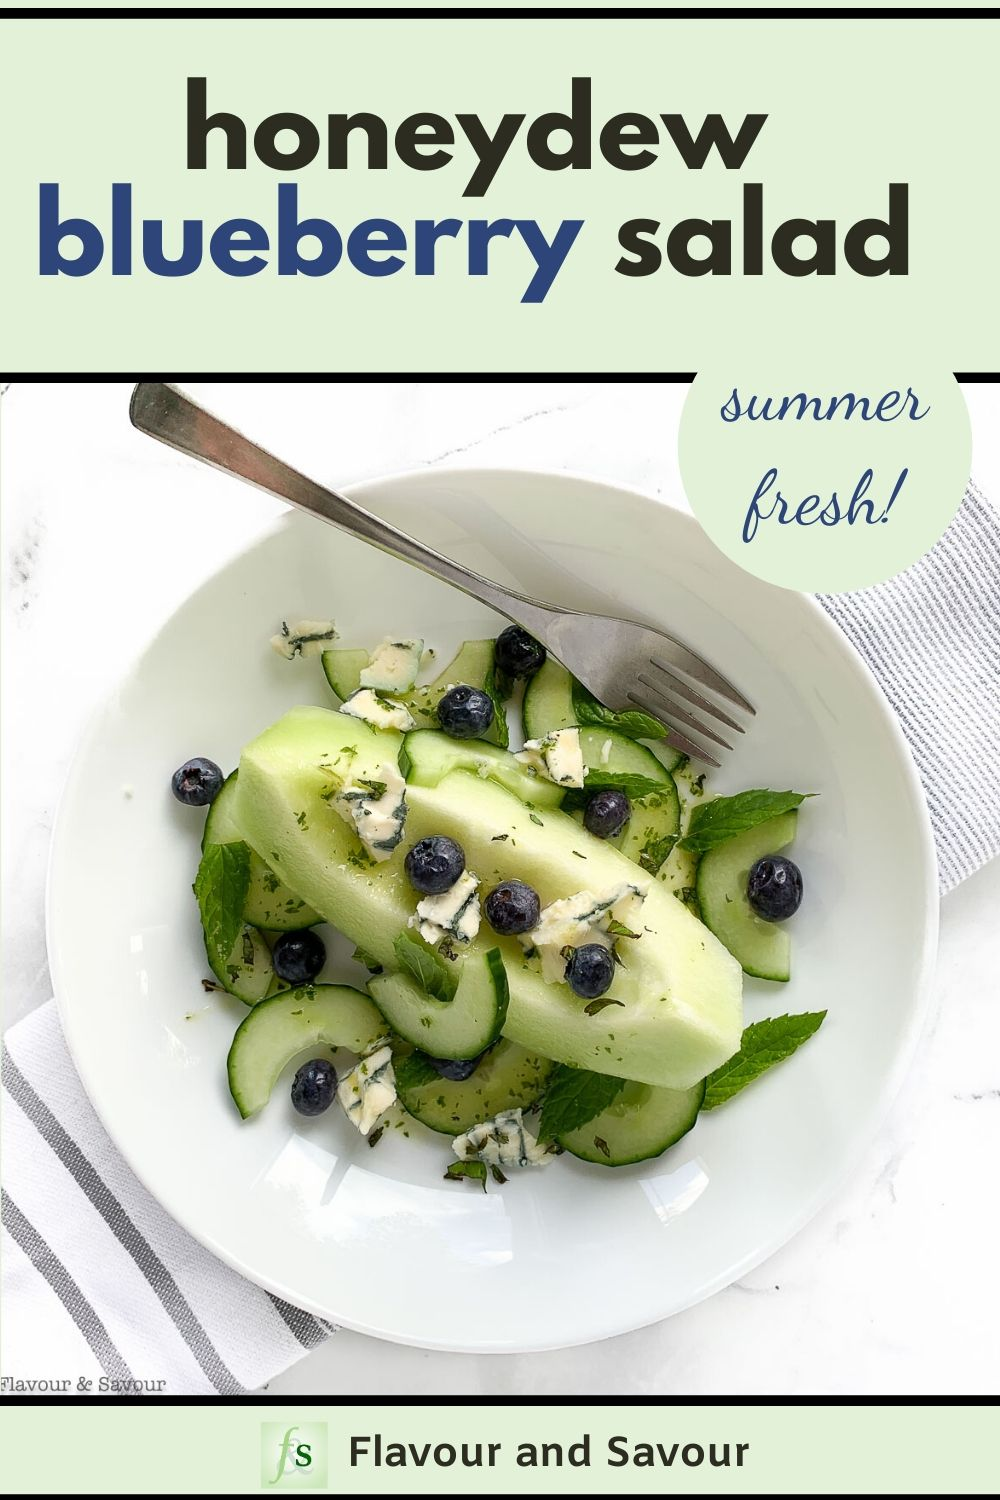 Summer Fresh Honeydew Blueberry Salad with Blue Cheese with text overlay